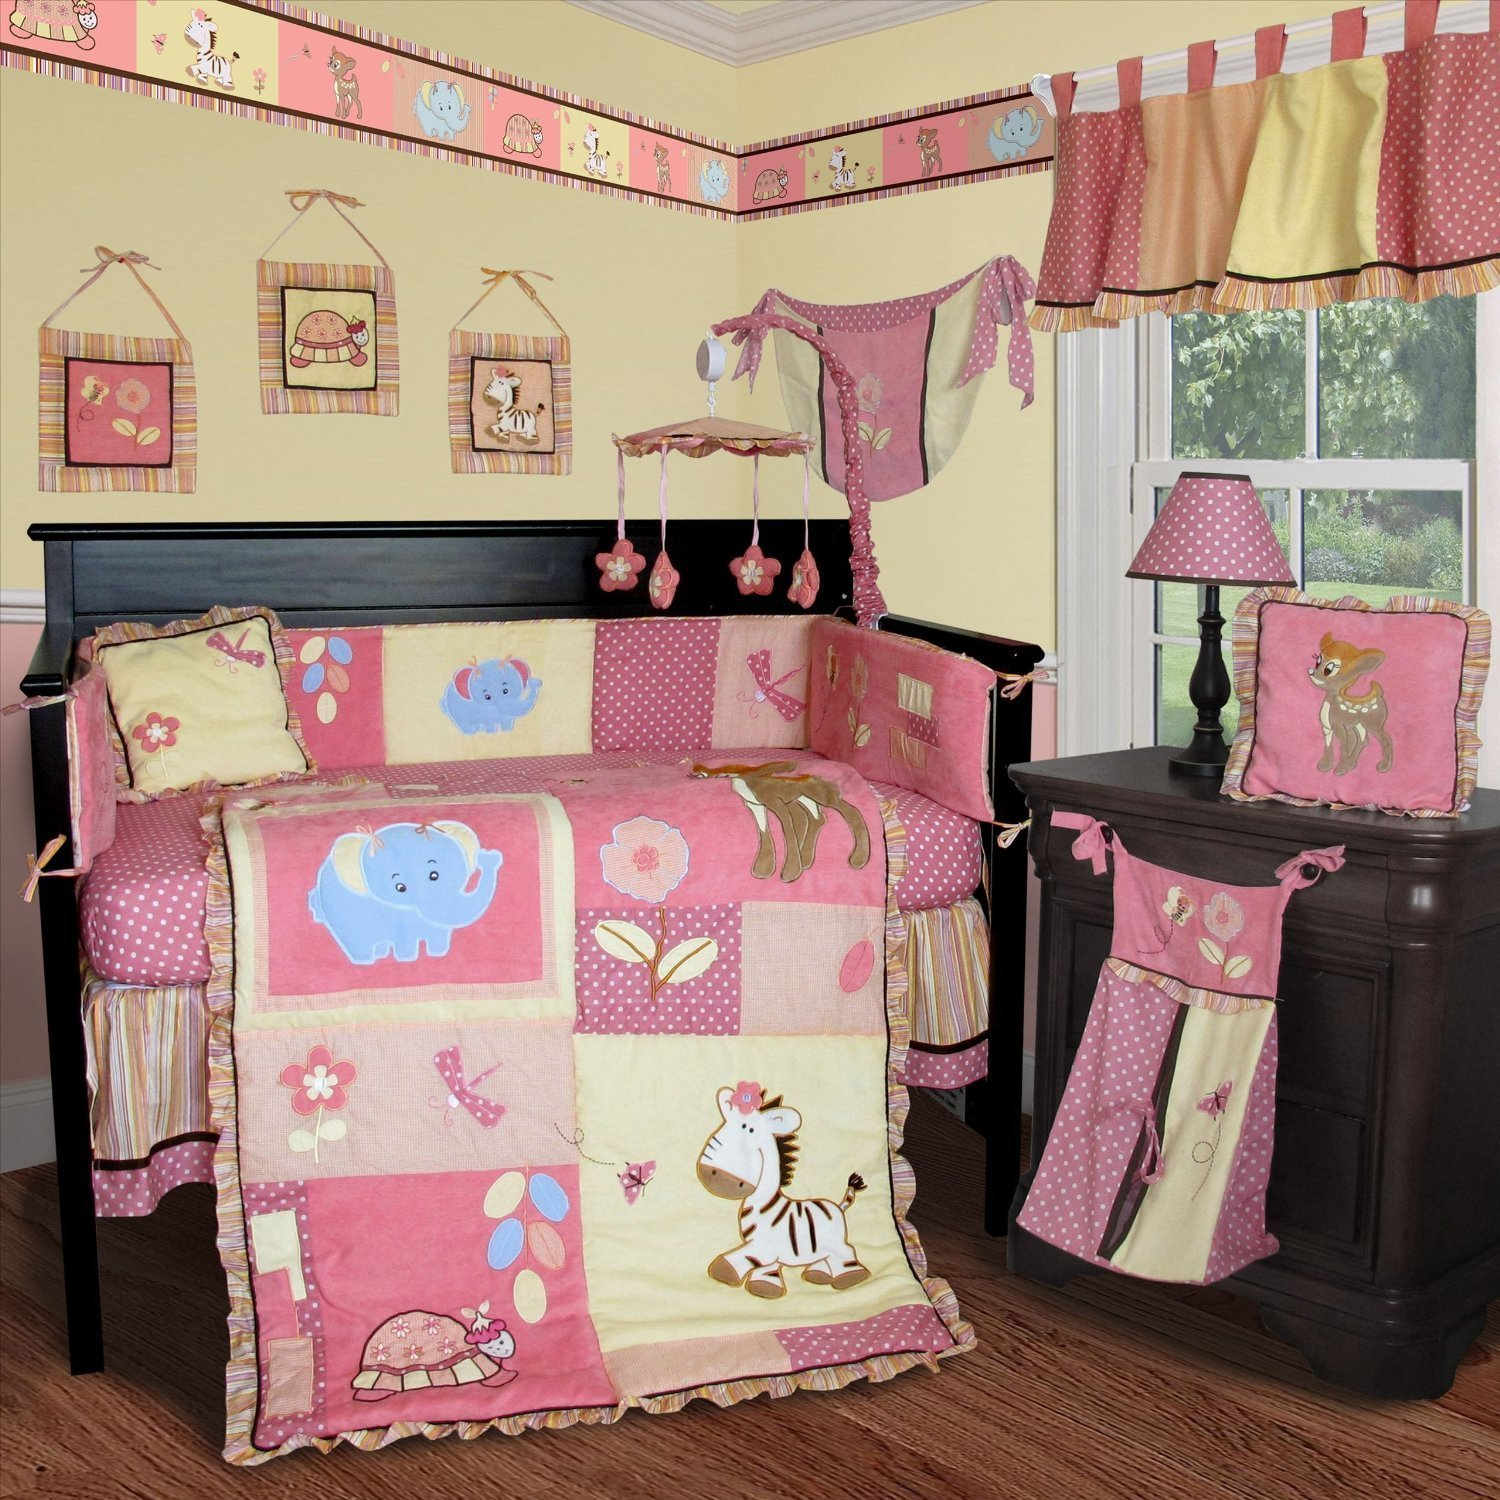 Cheap Crib Bedding Sets Home Furniture Design